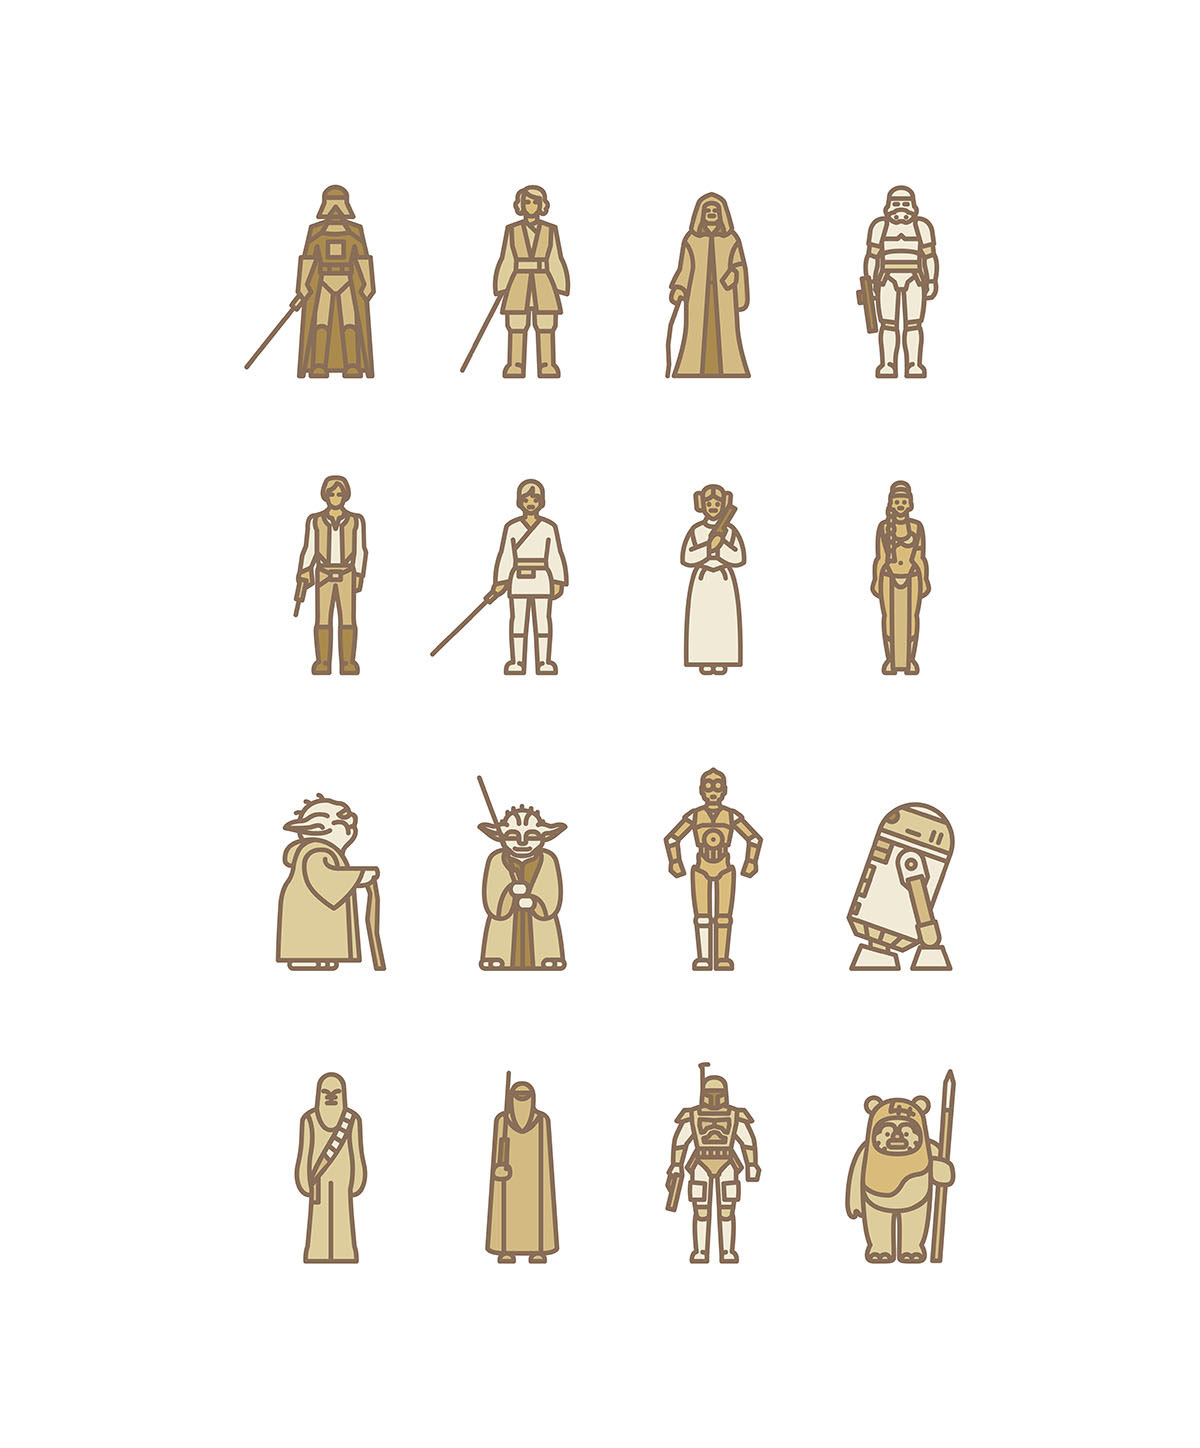 Star Wars Flat Icon Project On Behance